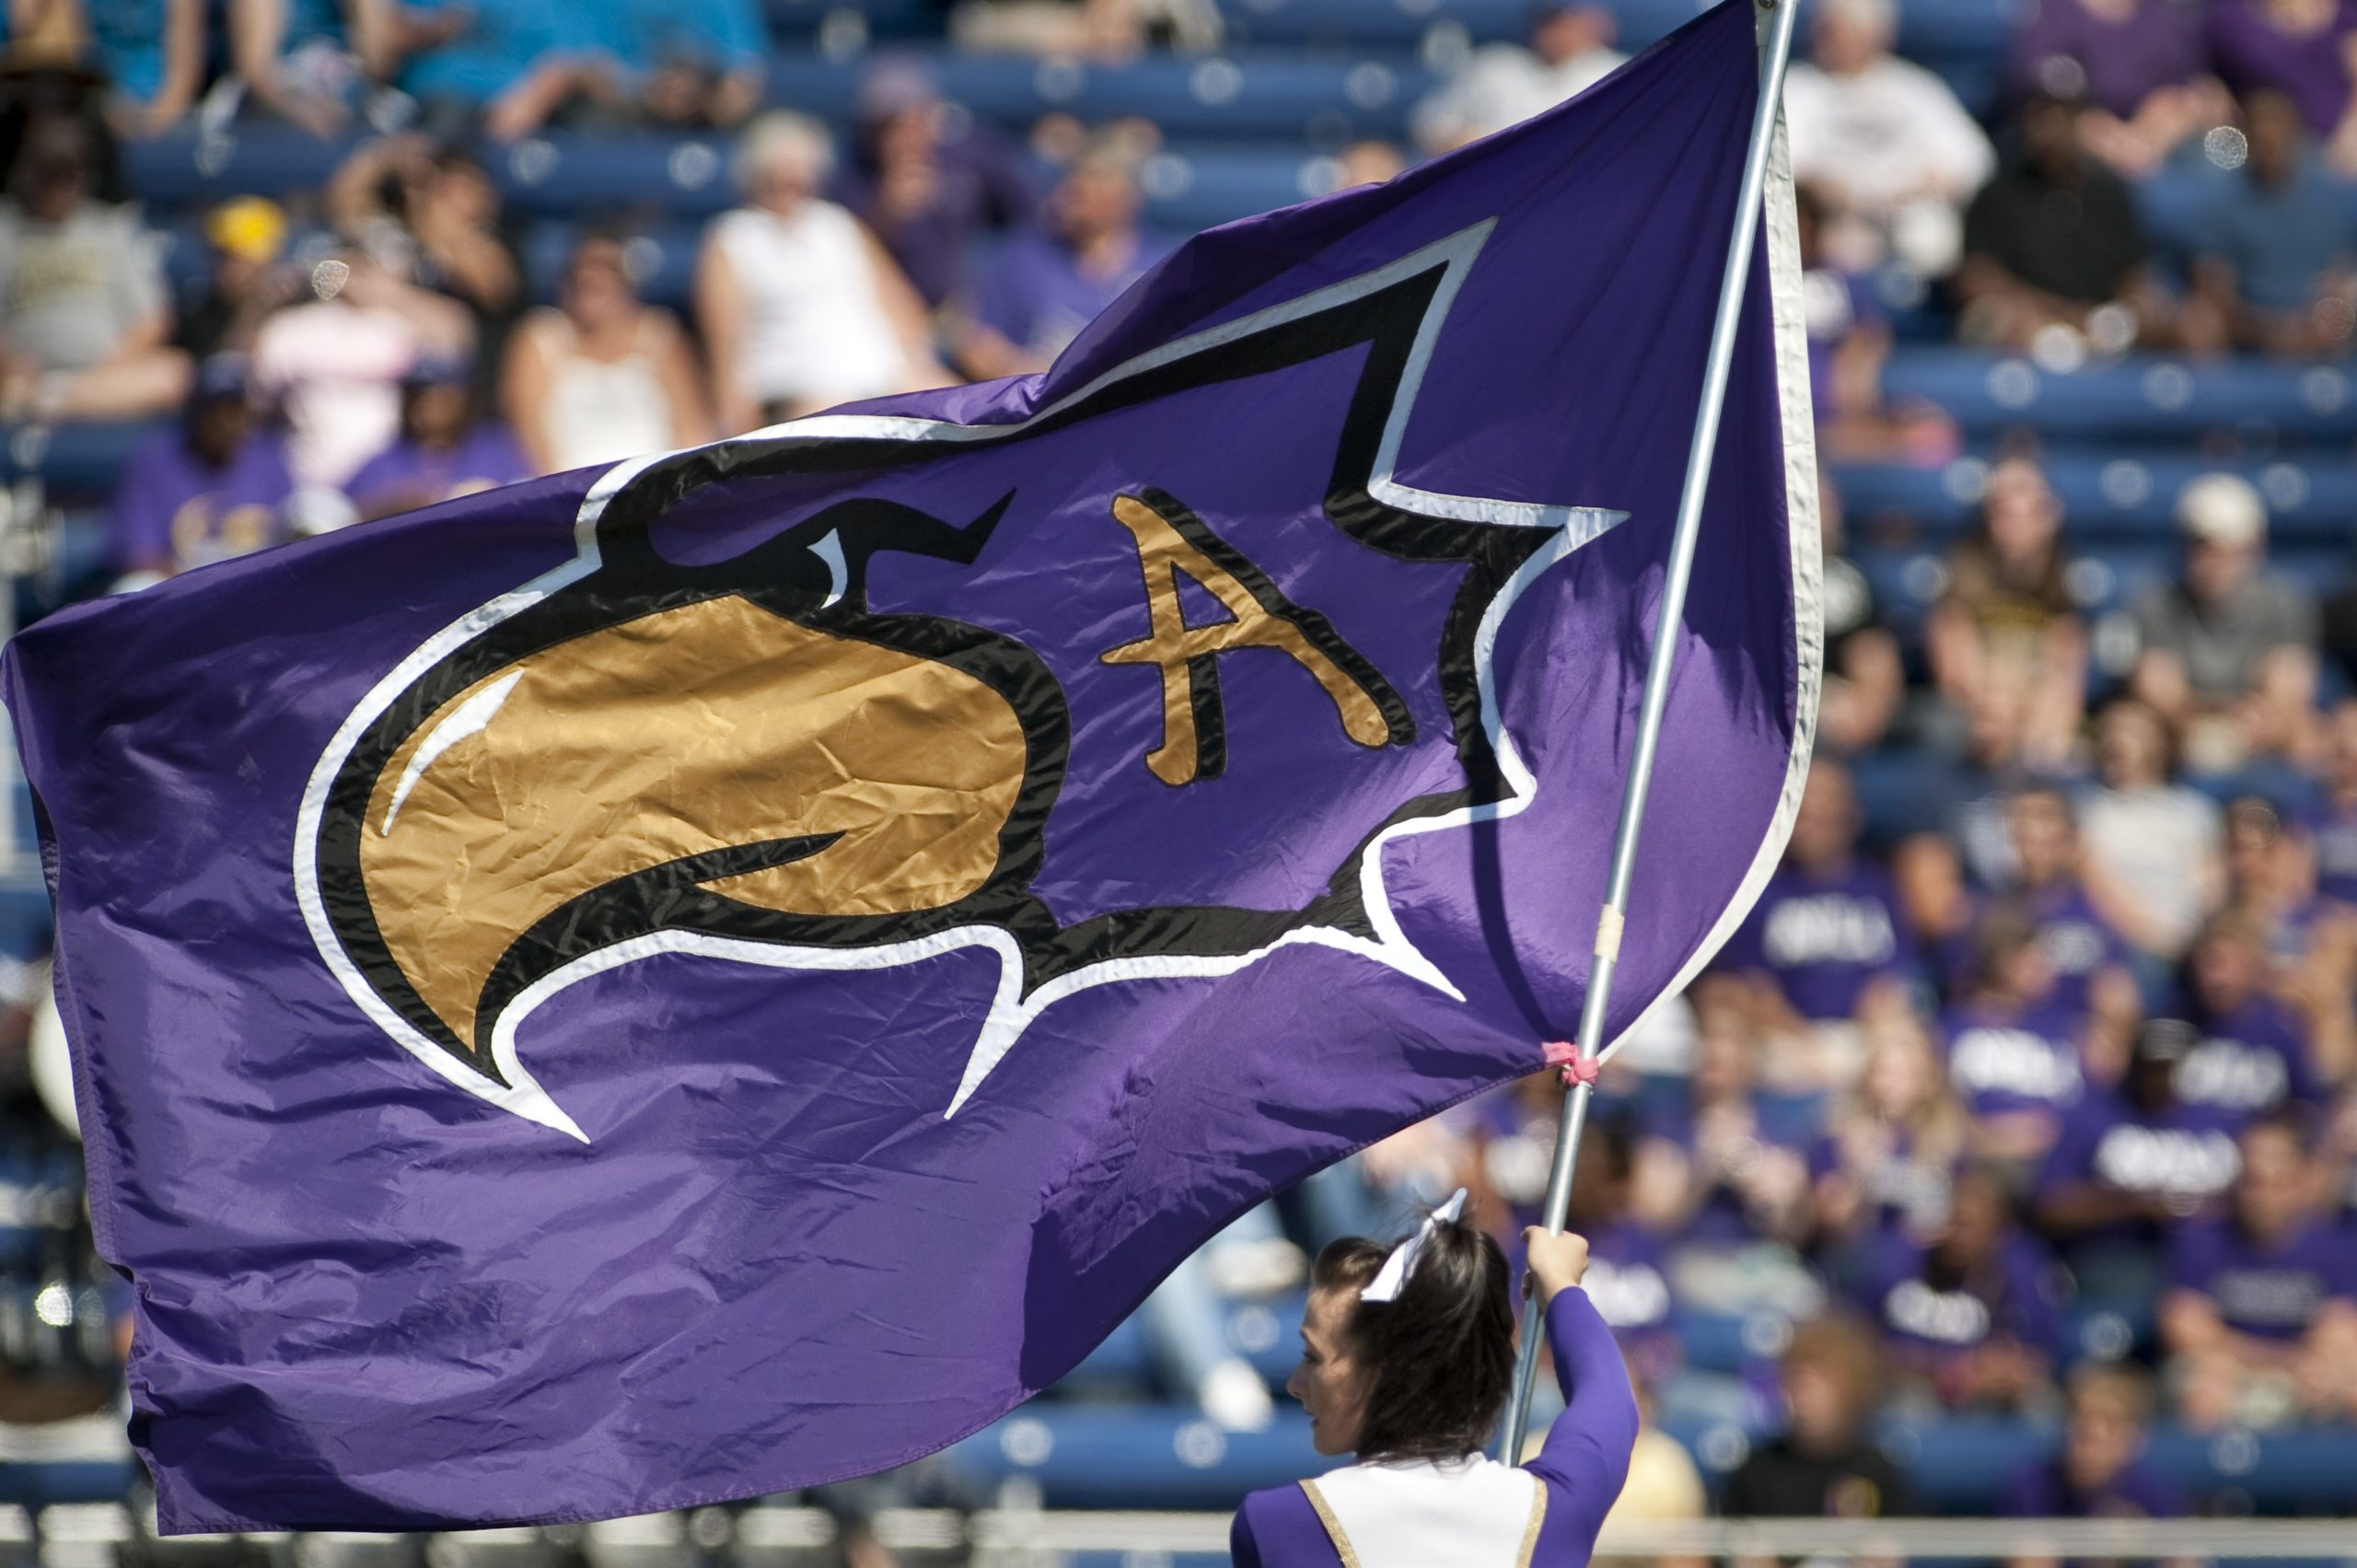 Avila University Eagle logo flag being waved at football game by cheerleader